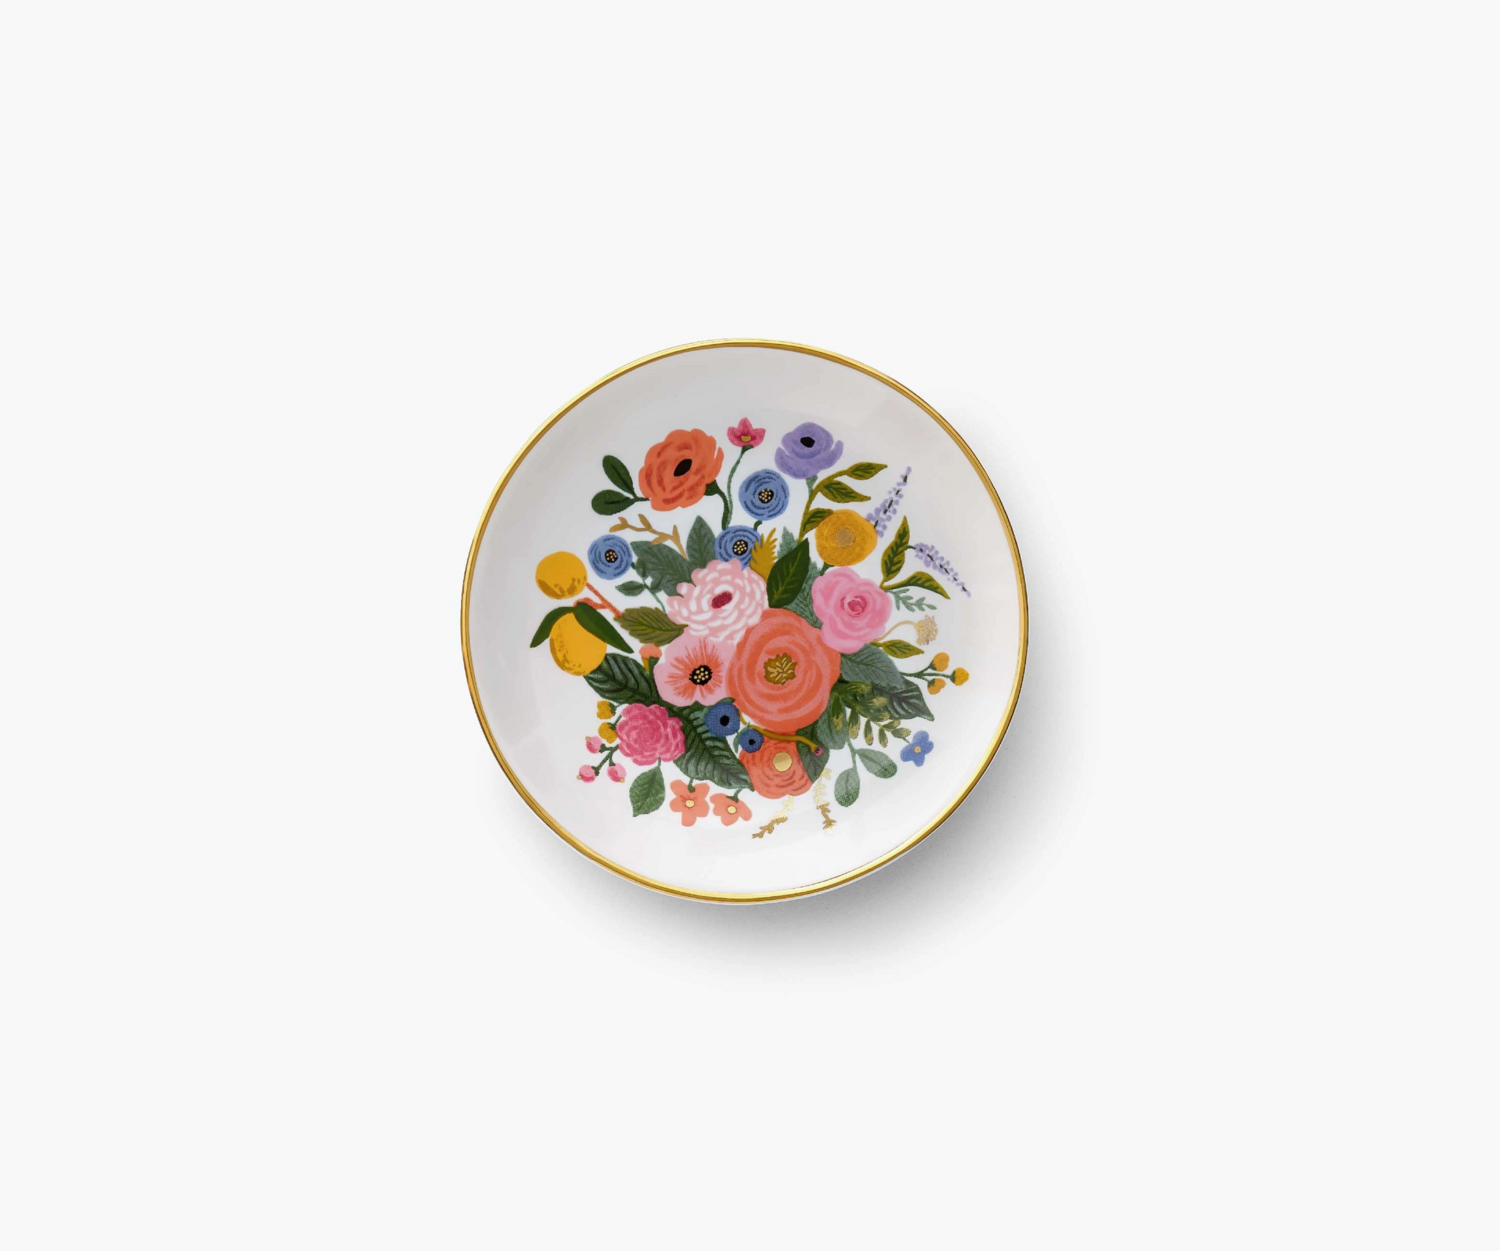 Garden Party Bouquet Ring Dish - Rifle Paper Co. RPC58